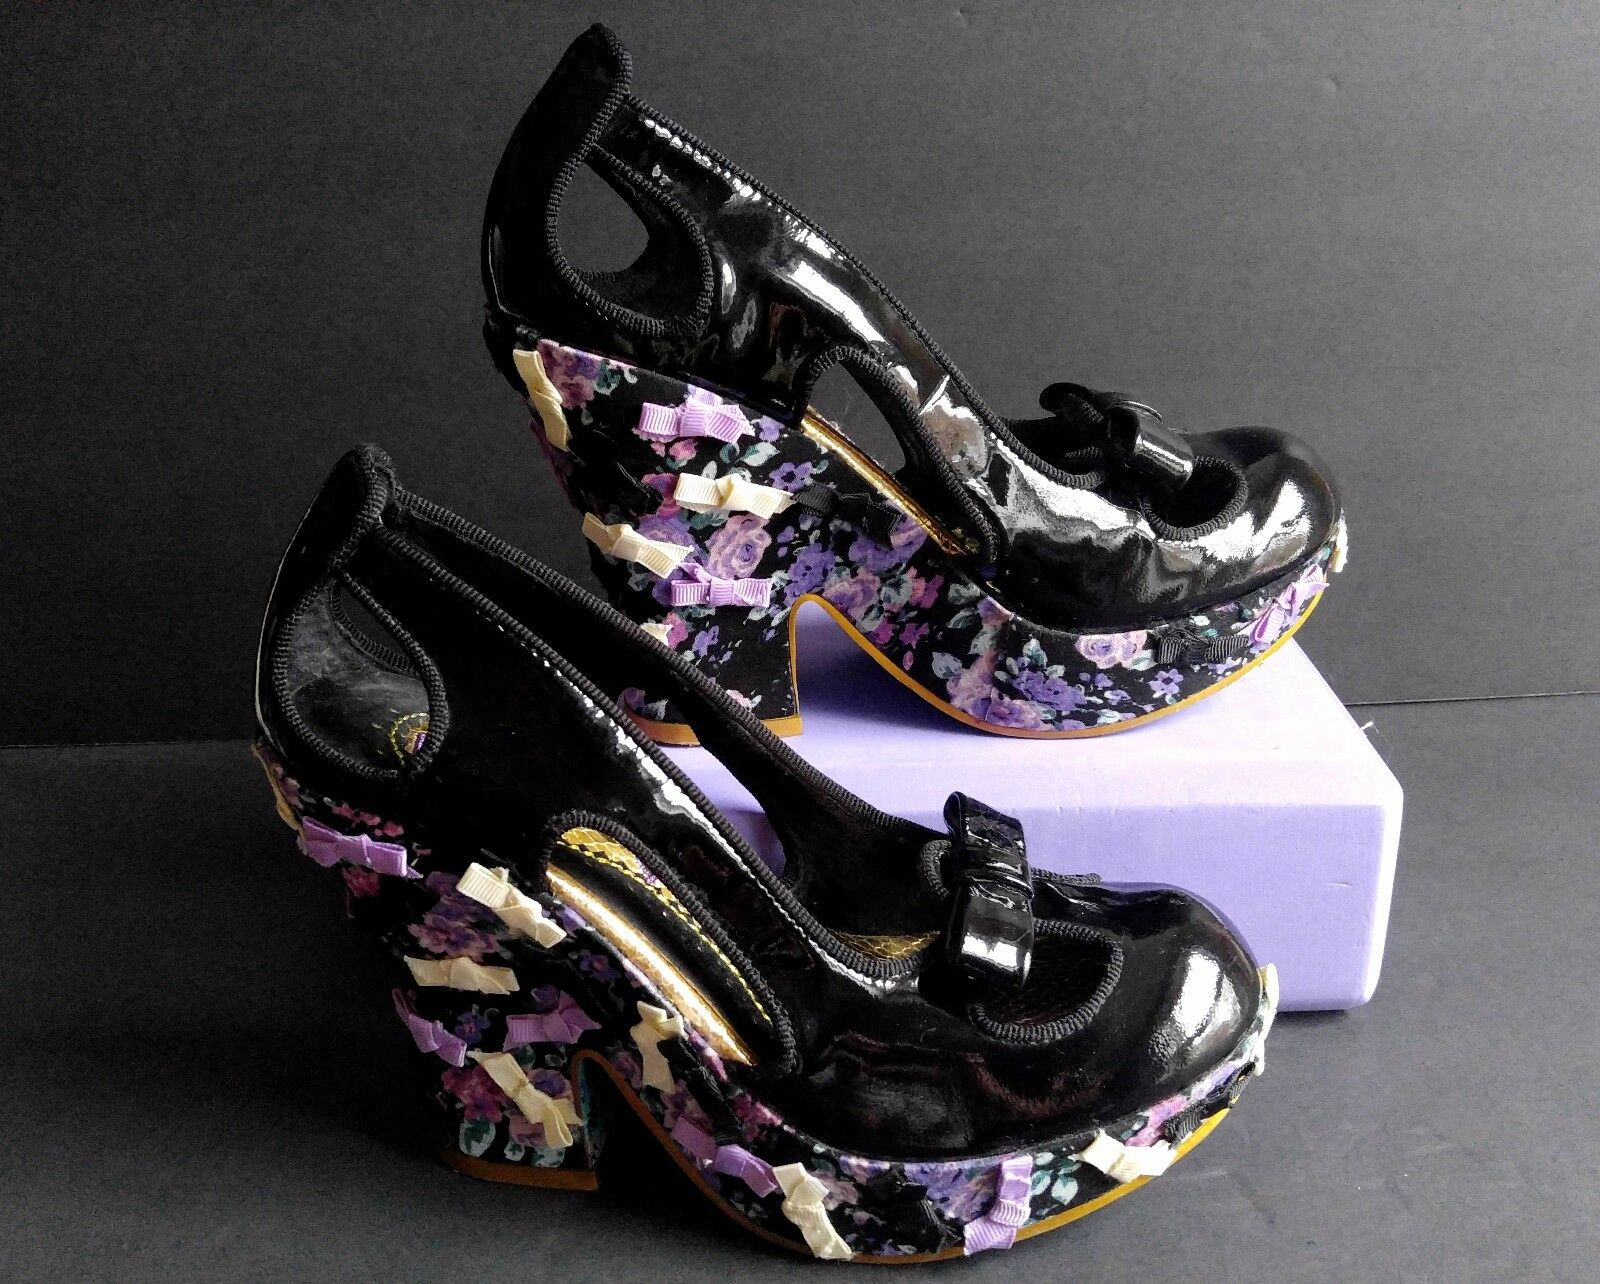 Irregular Irregular Irregular Choice Pumps schuhe Platform Wedge Spangled Bows Sz 8 1 2 a2ce73